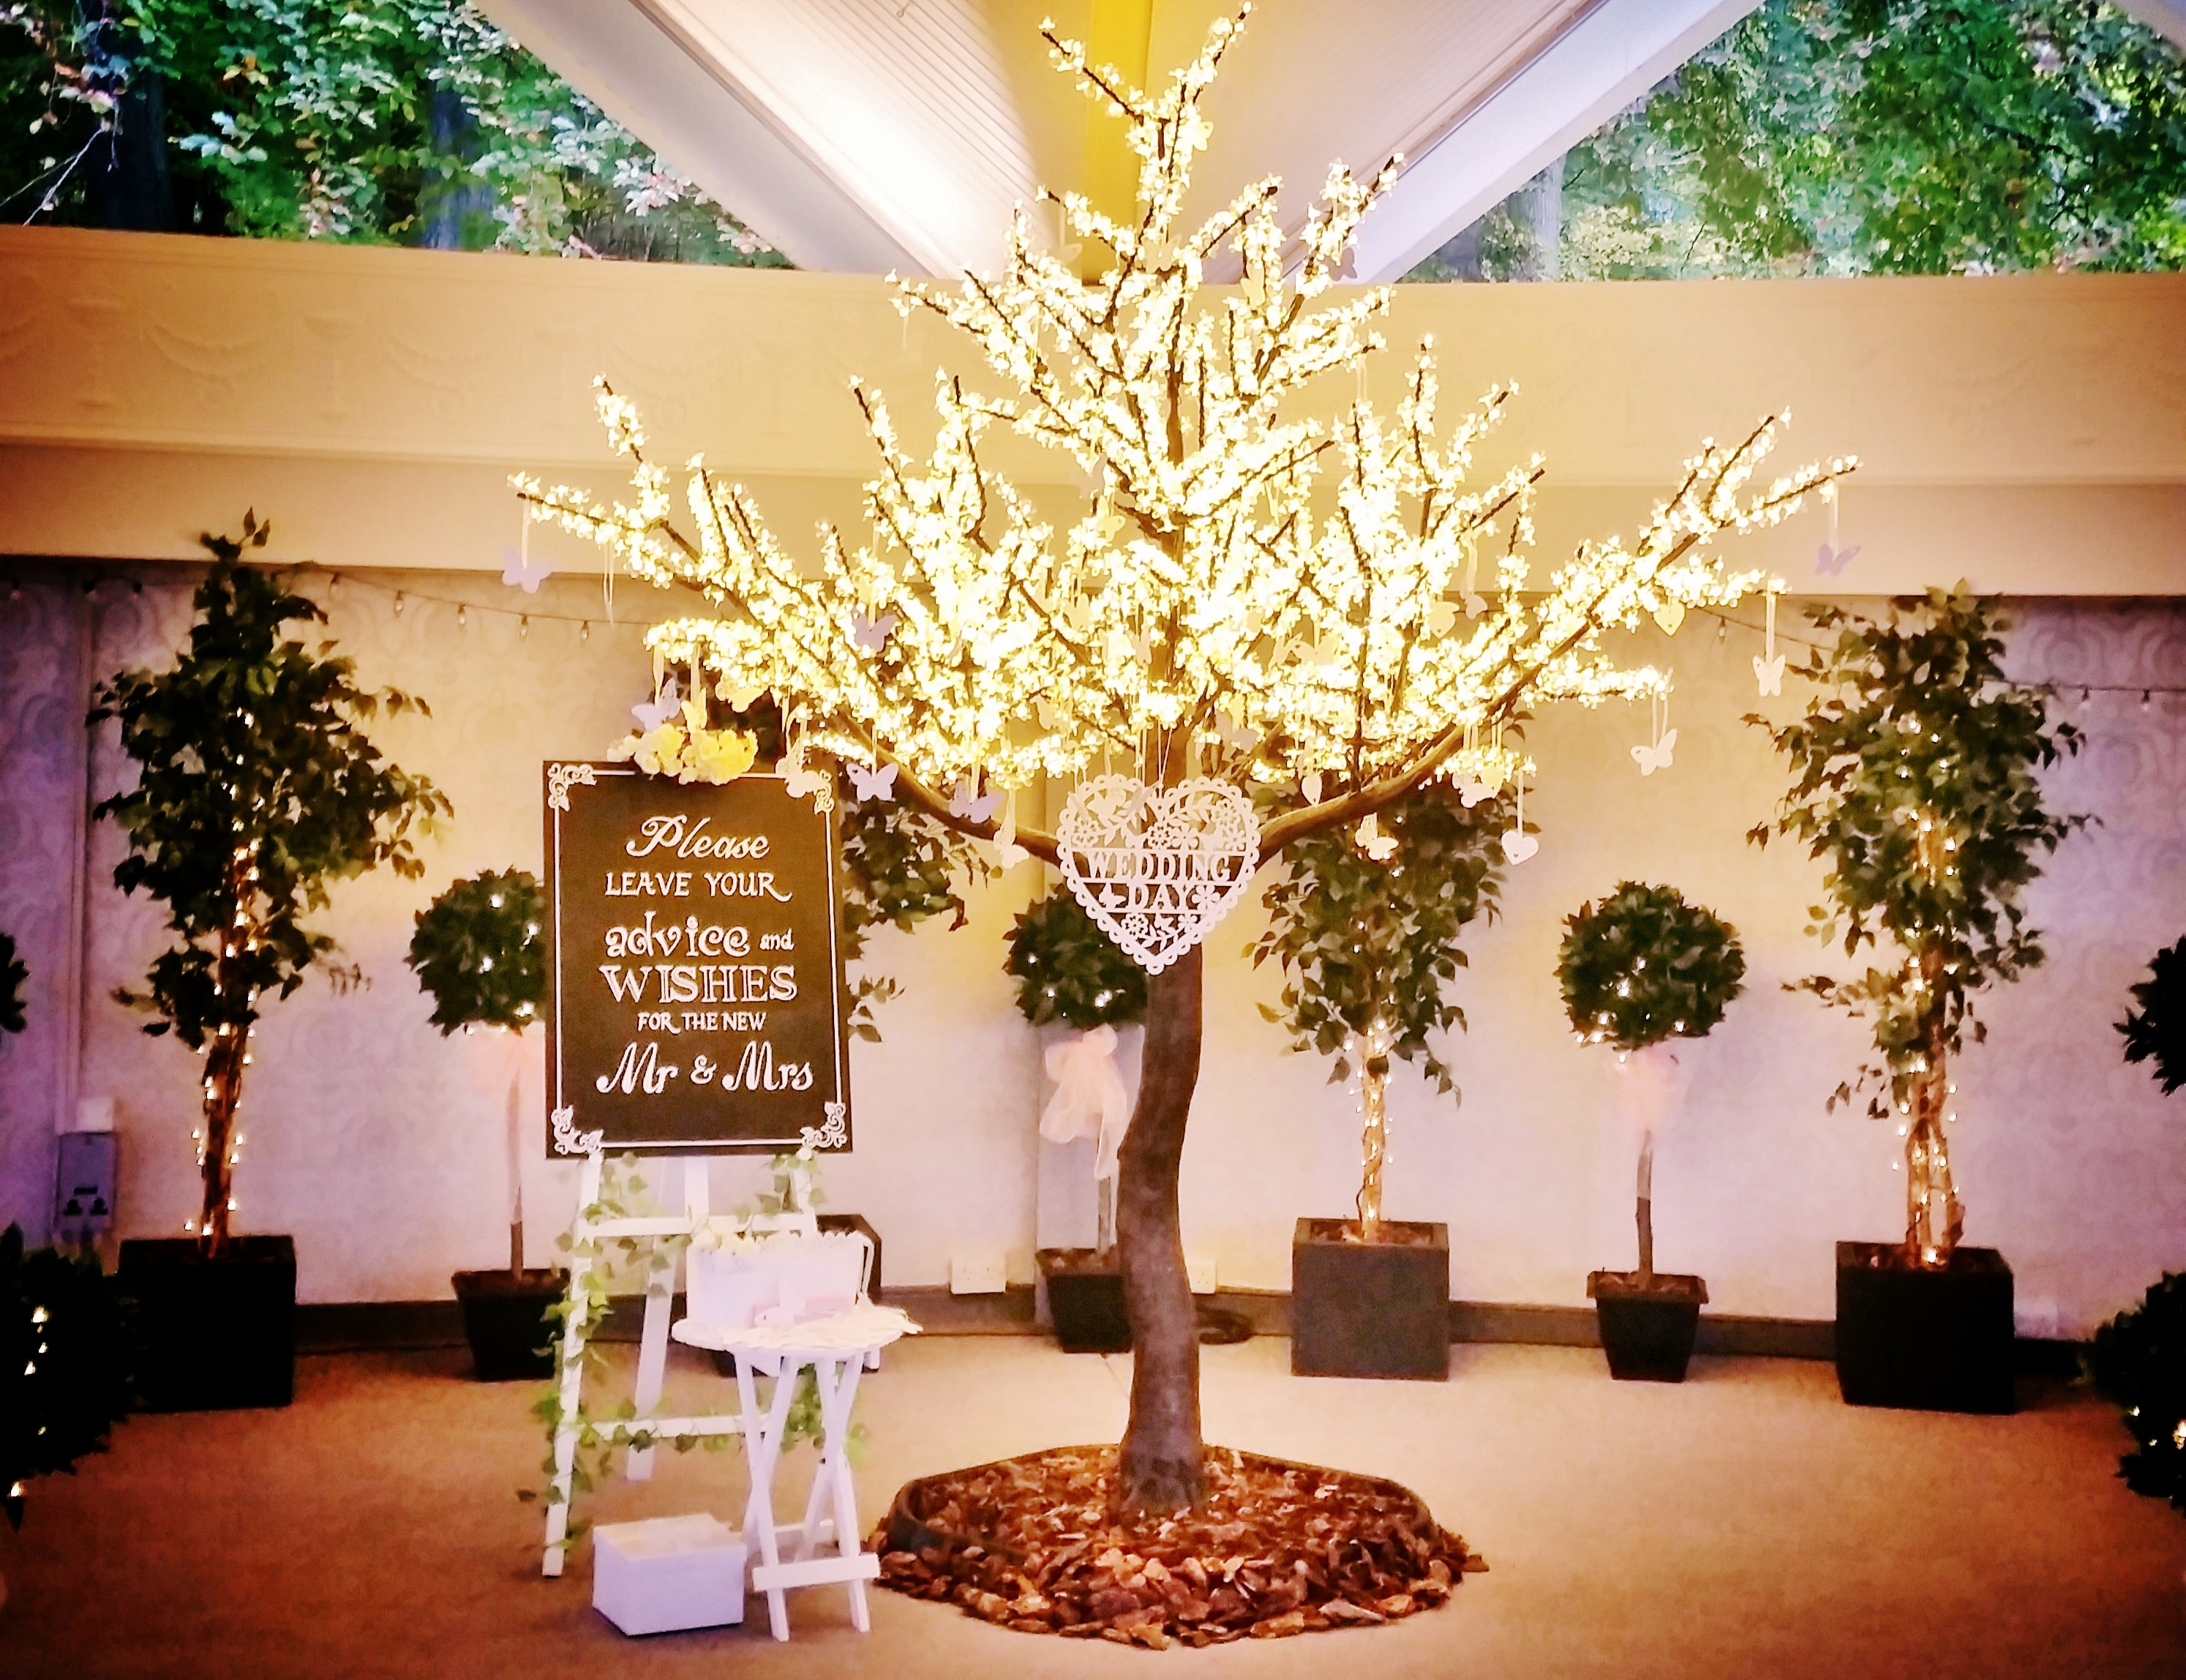 Wedding Wishes Tree at Atholl Palace